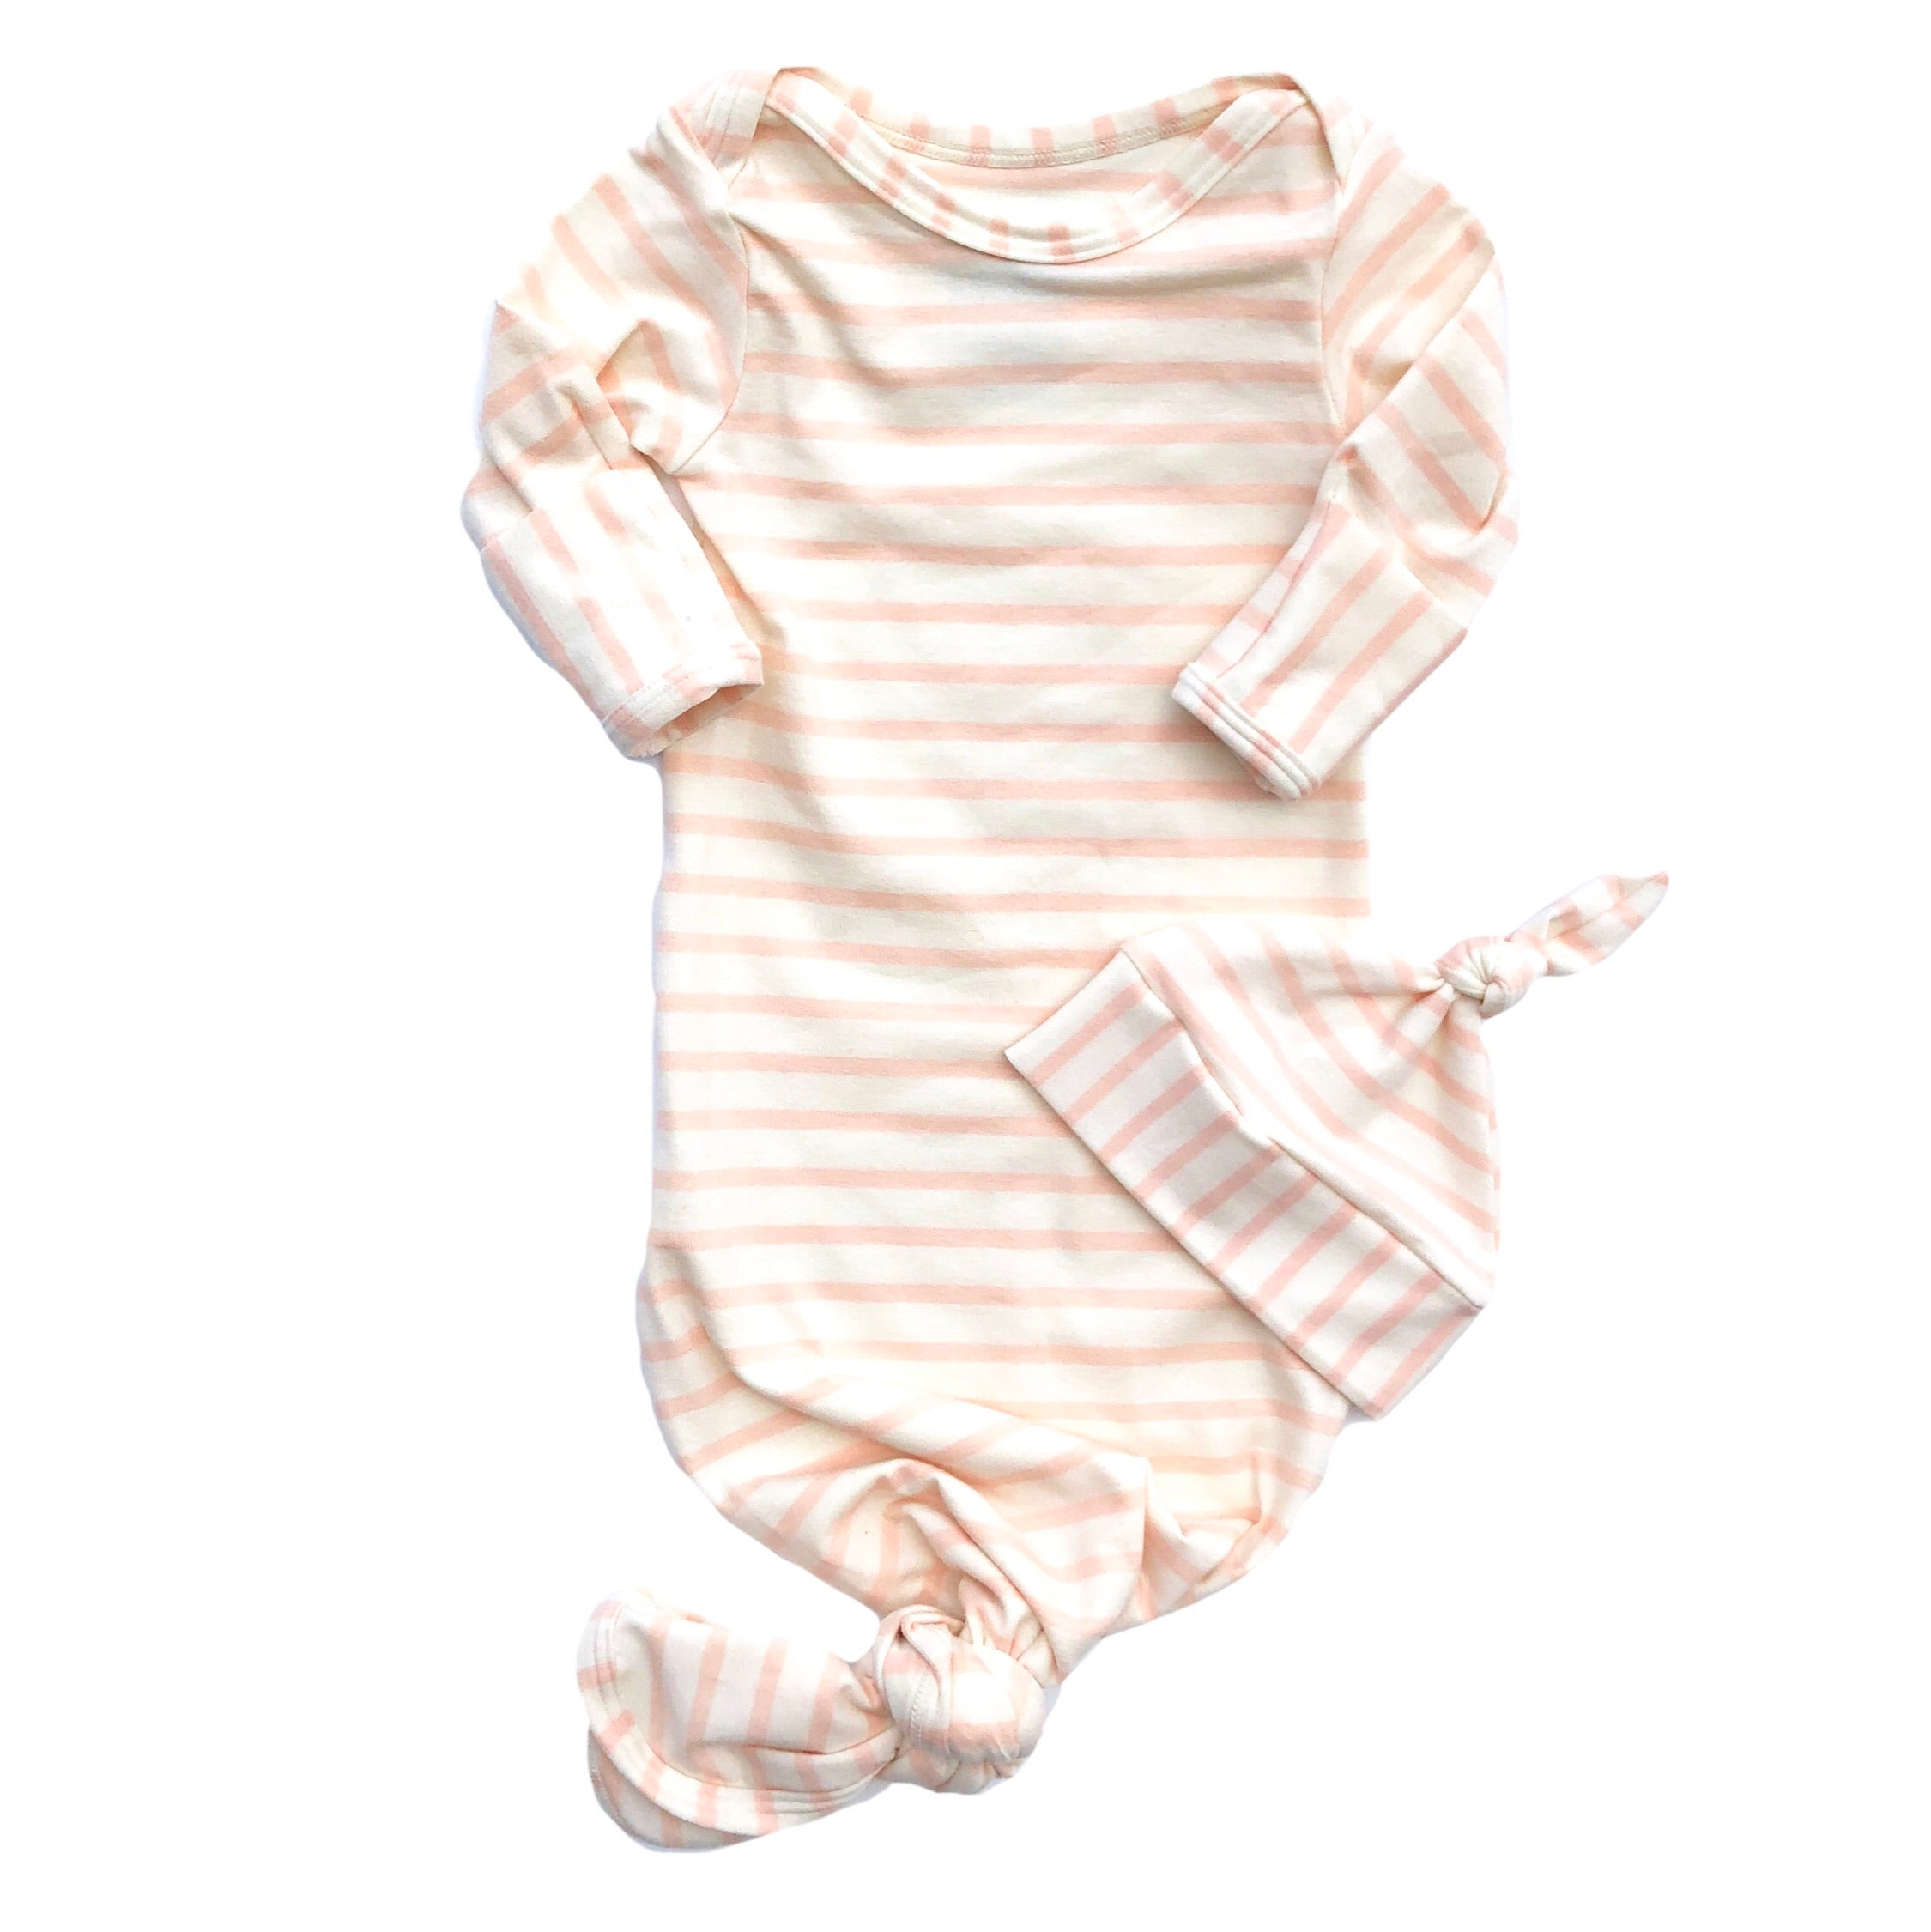 Blush Pink Stripe Knotted Bottom Baby Layette Gown - Oh So Vera